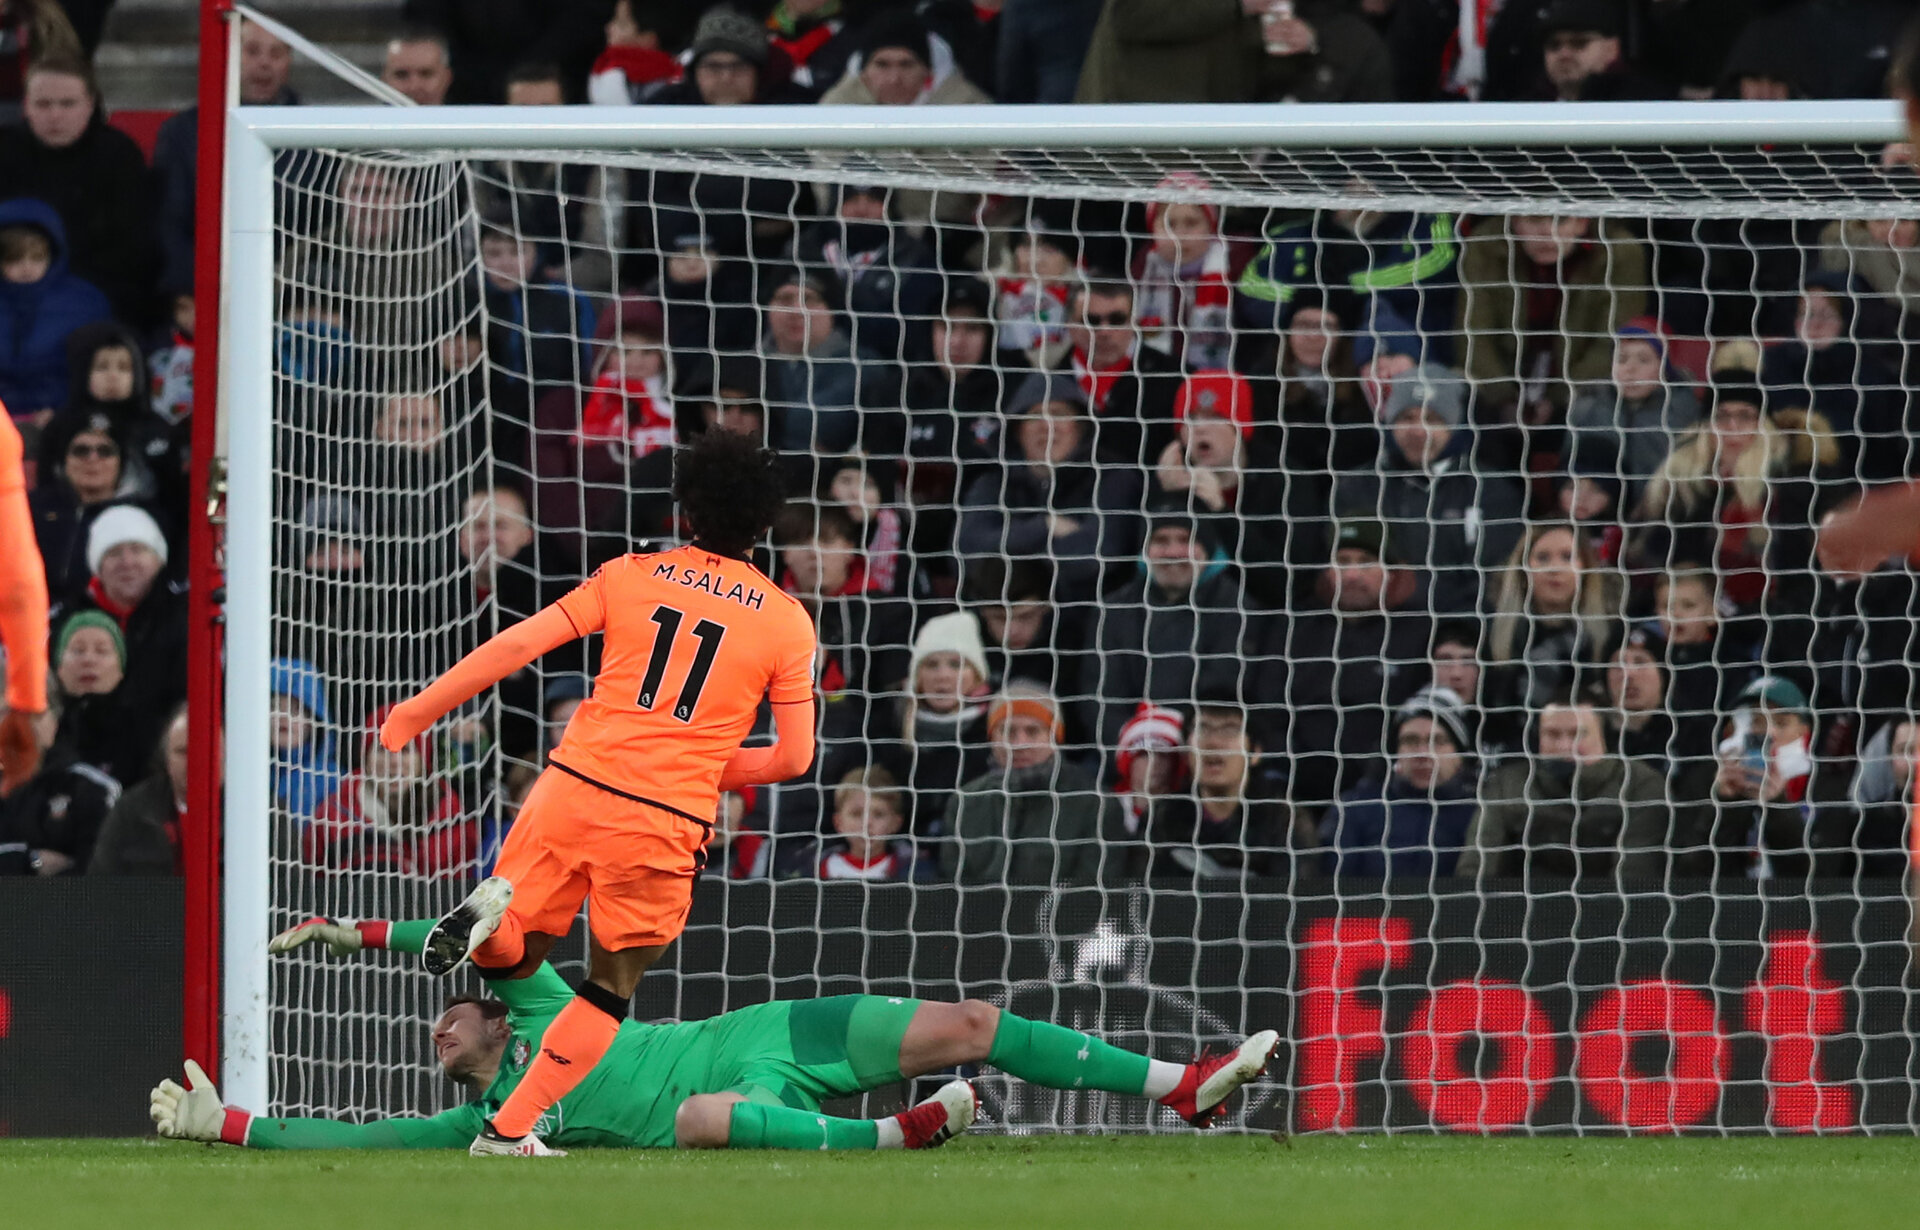 SOUTHAMPTON, ENGLAND - FEBRUARY 11: Mohamed Salah of Liverpool puts his team 2-0 up during the Premier League match between Southampton and Liverpool at St Mary's Stadium on February 11, 2018 in Southampton, England. (Photo by Matt Watson/Southampton FC via Getty Images)